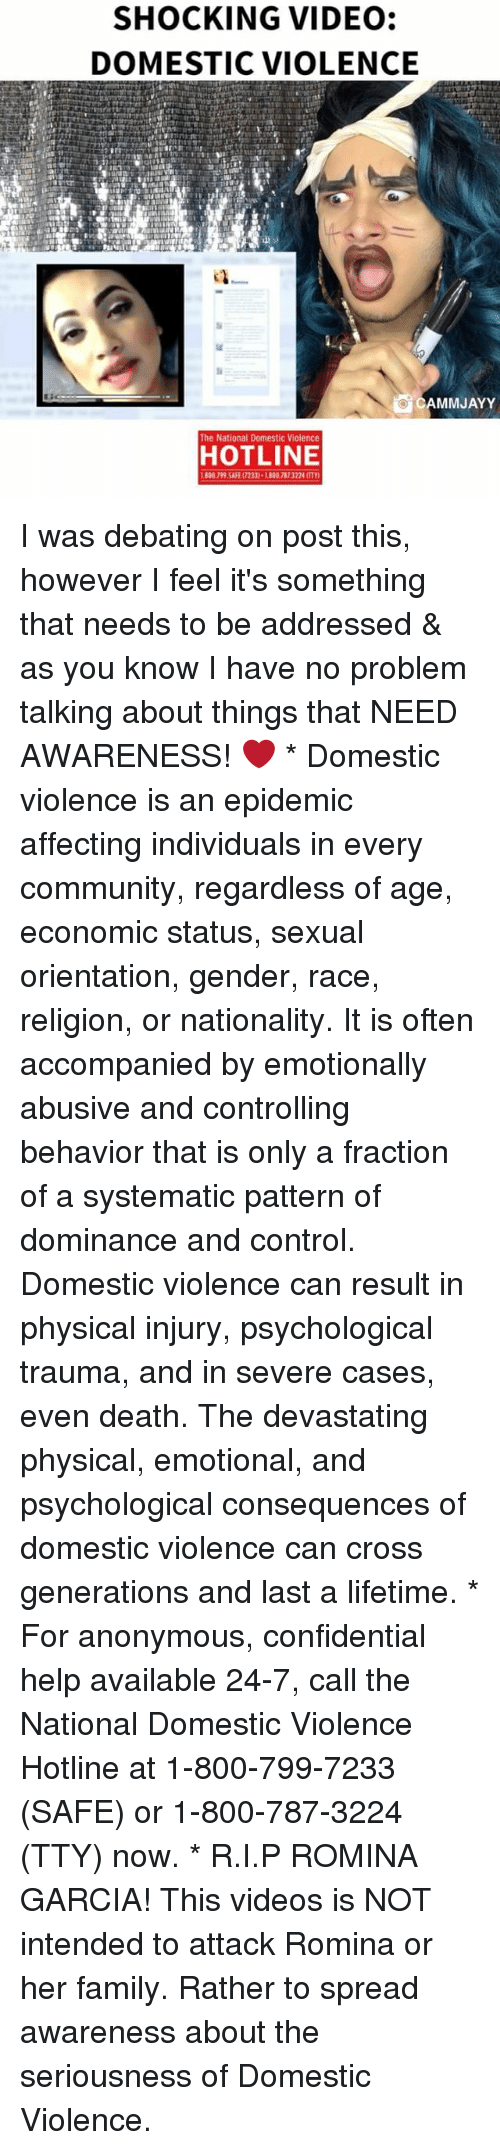 systematic: SHOCKING VIDEO:  DOMESTIC VIOLENCE  CAMMJAYY  The National Domestic Violence  HOTLINE  1800.799.SAFE (7233)-1800 787 3224 (TT I was debating on post this, however I feel it's something that needs to be addressed & as you know I have no problem talking about things that NEED AWARENESS! ❤️ * Domestic violence is an epidemic affecting individuals in every community, regardless of age, economic status, sexual orientation, gender, race, religion, or nationality. It is often accompanied by emotionally abusive and controlling behavior that is only a fraction of a systematic pattern of dominance and control. Domestic violence can result in physical injury, psychological trauma, and in severe cases, even death. The devastating physical, emotional, and psychological consequences of domestic violence can cross generations and last a lifetime. * For anonymous, confidential help available 24-7, call the National Domestic Violence Hotline at 1-800-799-7233 (SAFE) or 1-800-787-3224 (TTY) now. * R.I.P ROMINA GARCIA! This videos is NOT intended to attack Romina or her family. Rather to spread awareness about the seriousness of Domestic Violence.